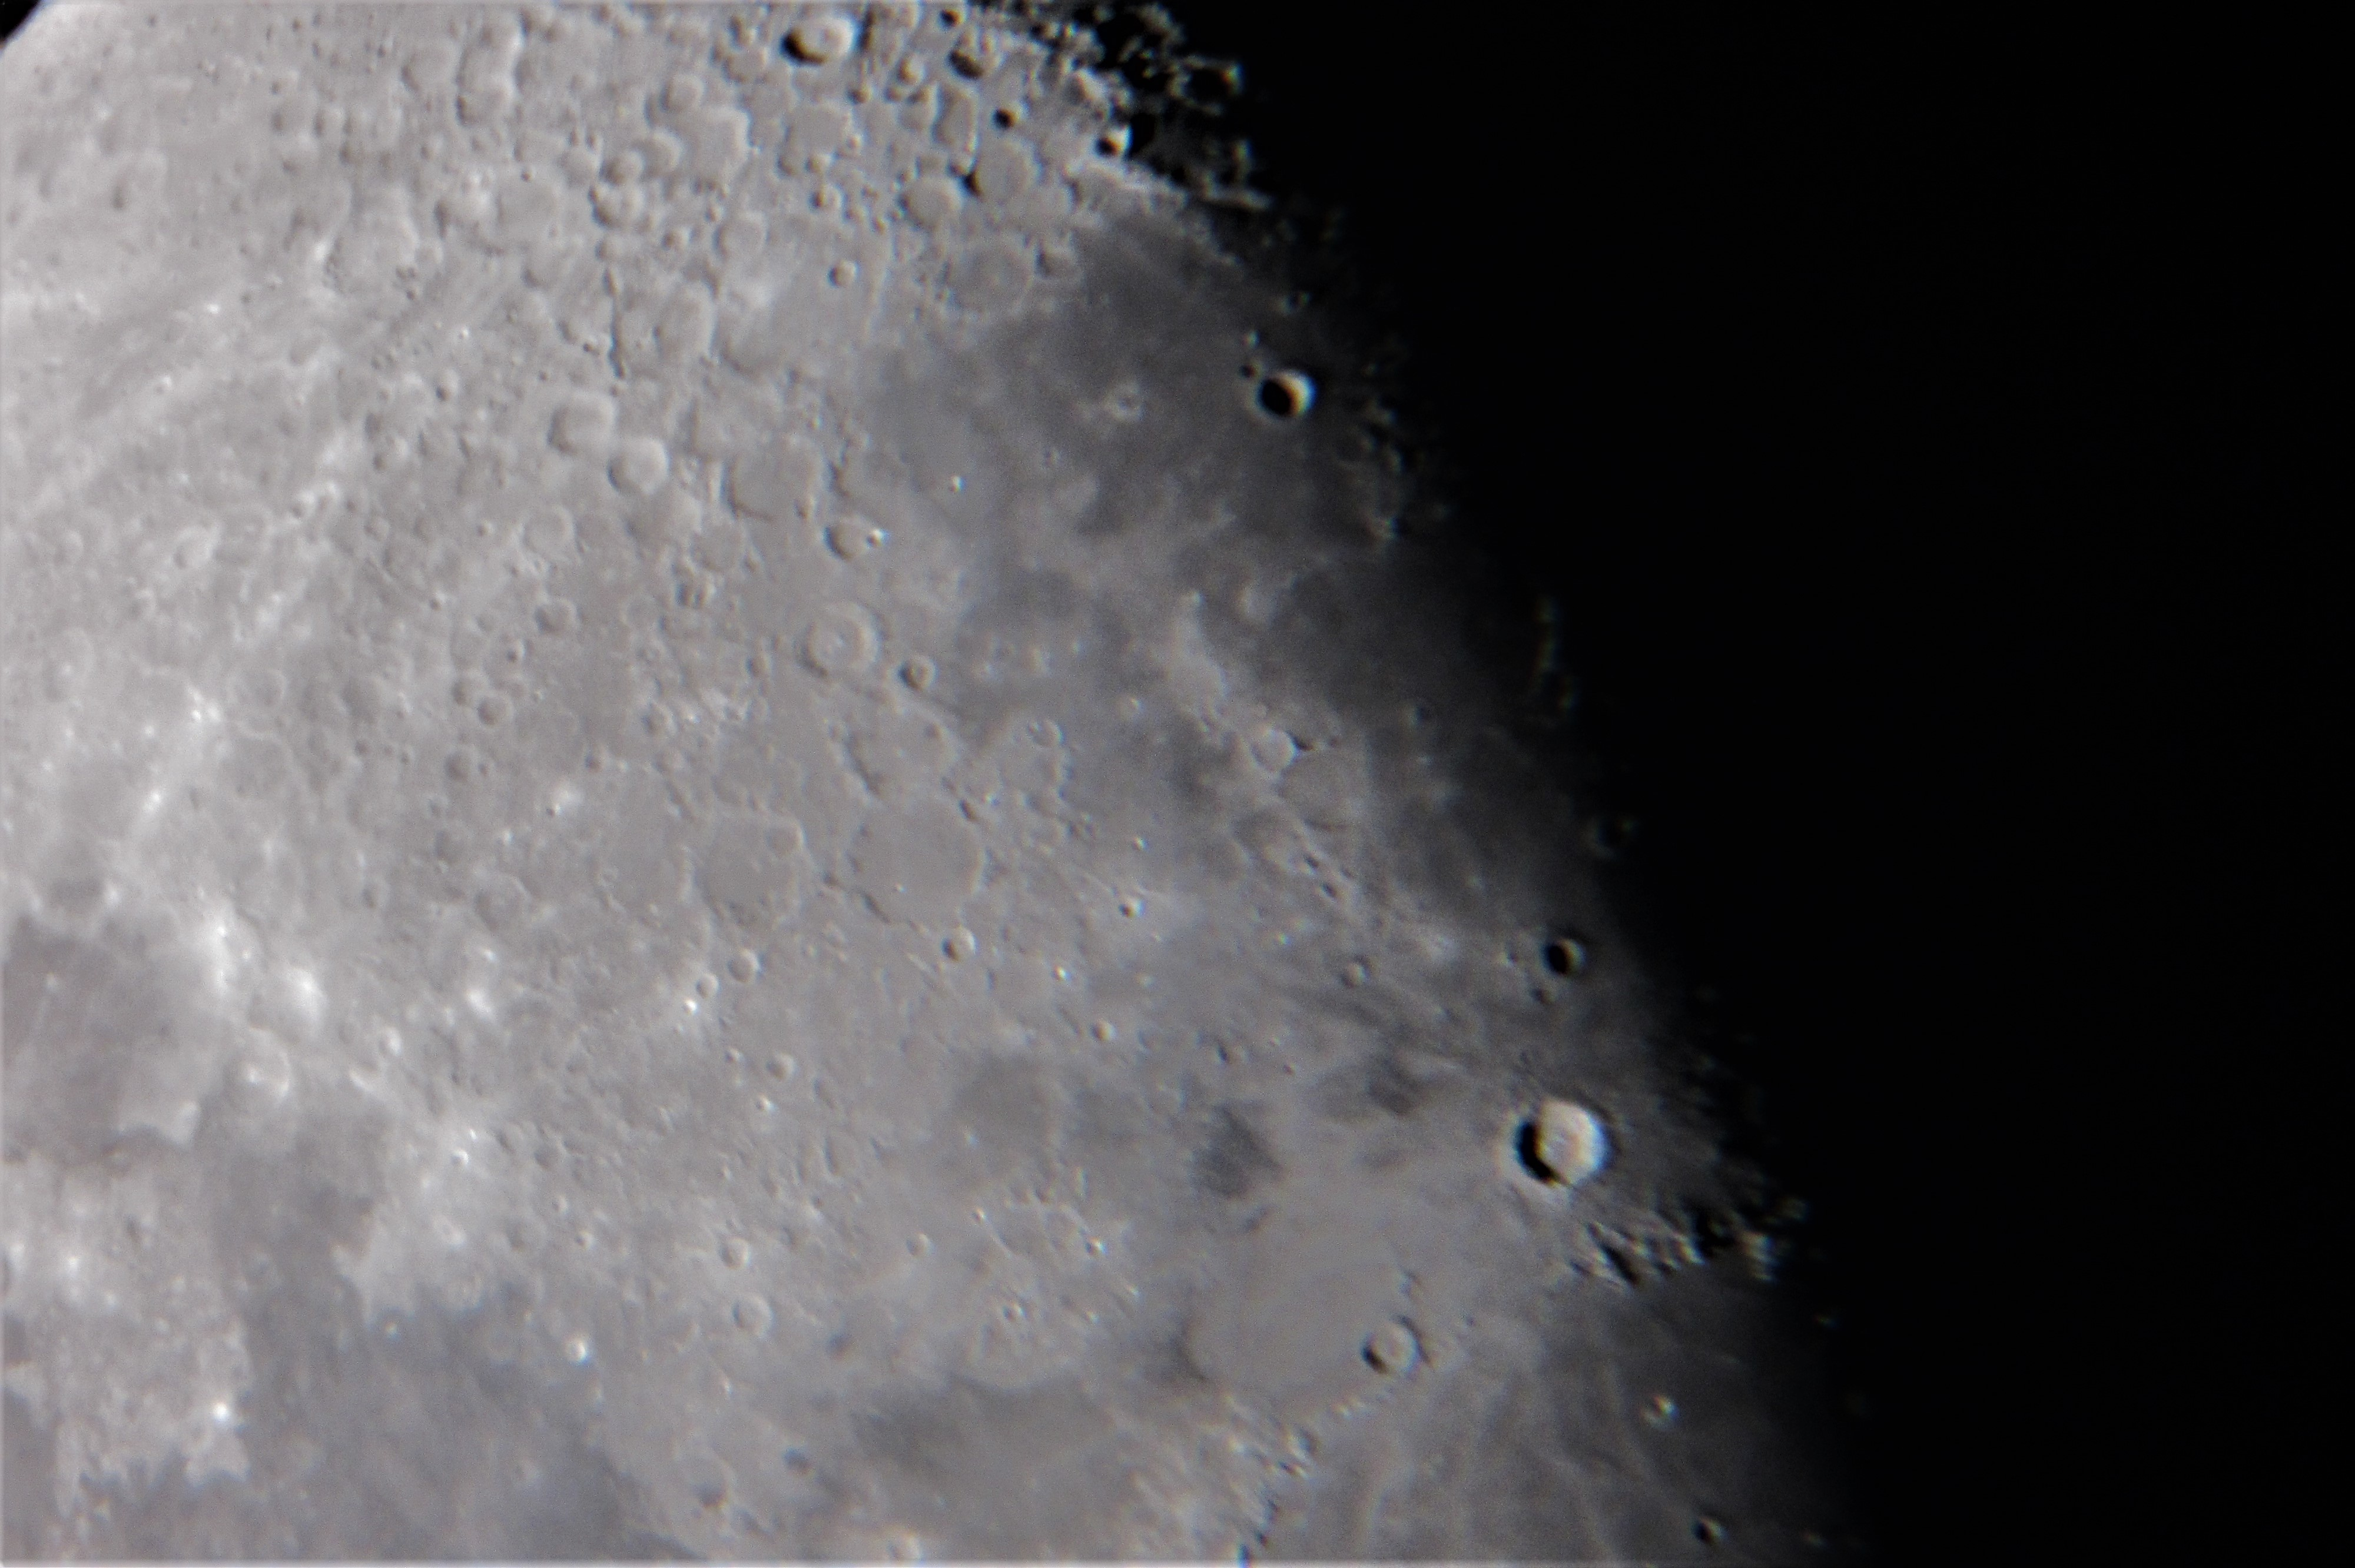 """I took some more afocal moon pics last night (29th October ) at 19:00 UT with my Canon Ixus 117 compact camera clamped to the eyepiece of my 10"" Dobsonian.  Elevation was pretty low and seeing was atrocious."""